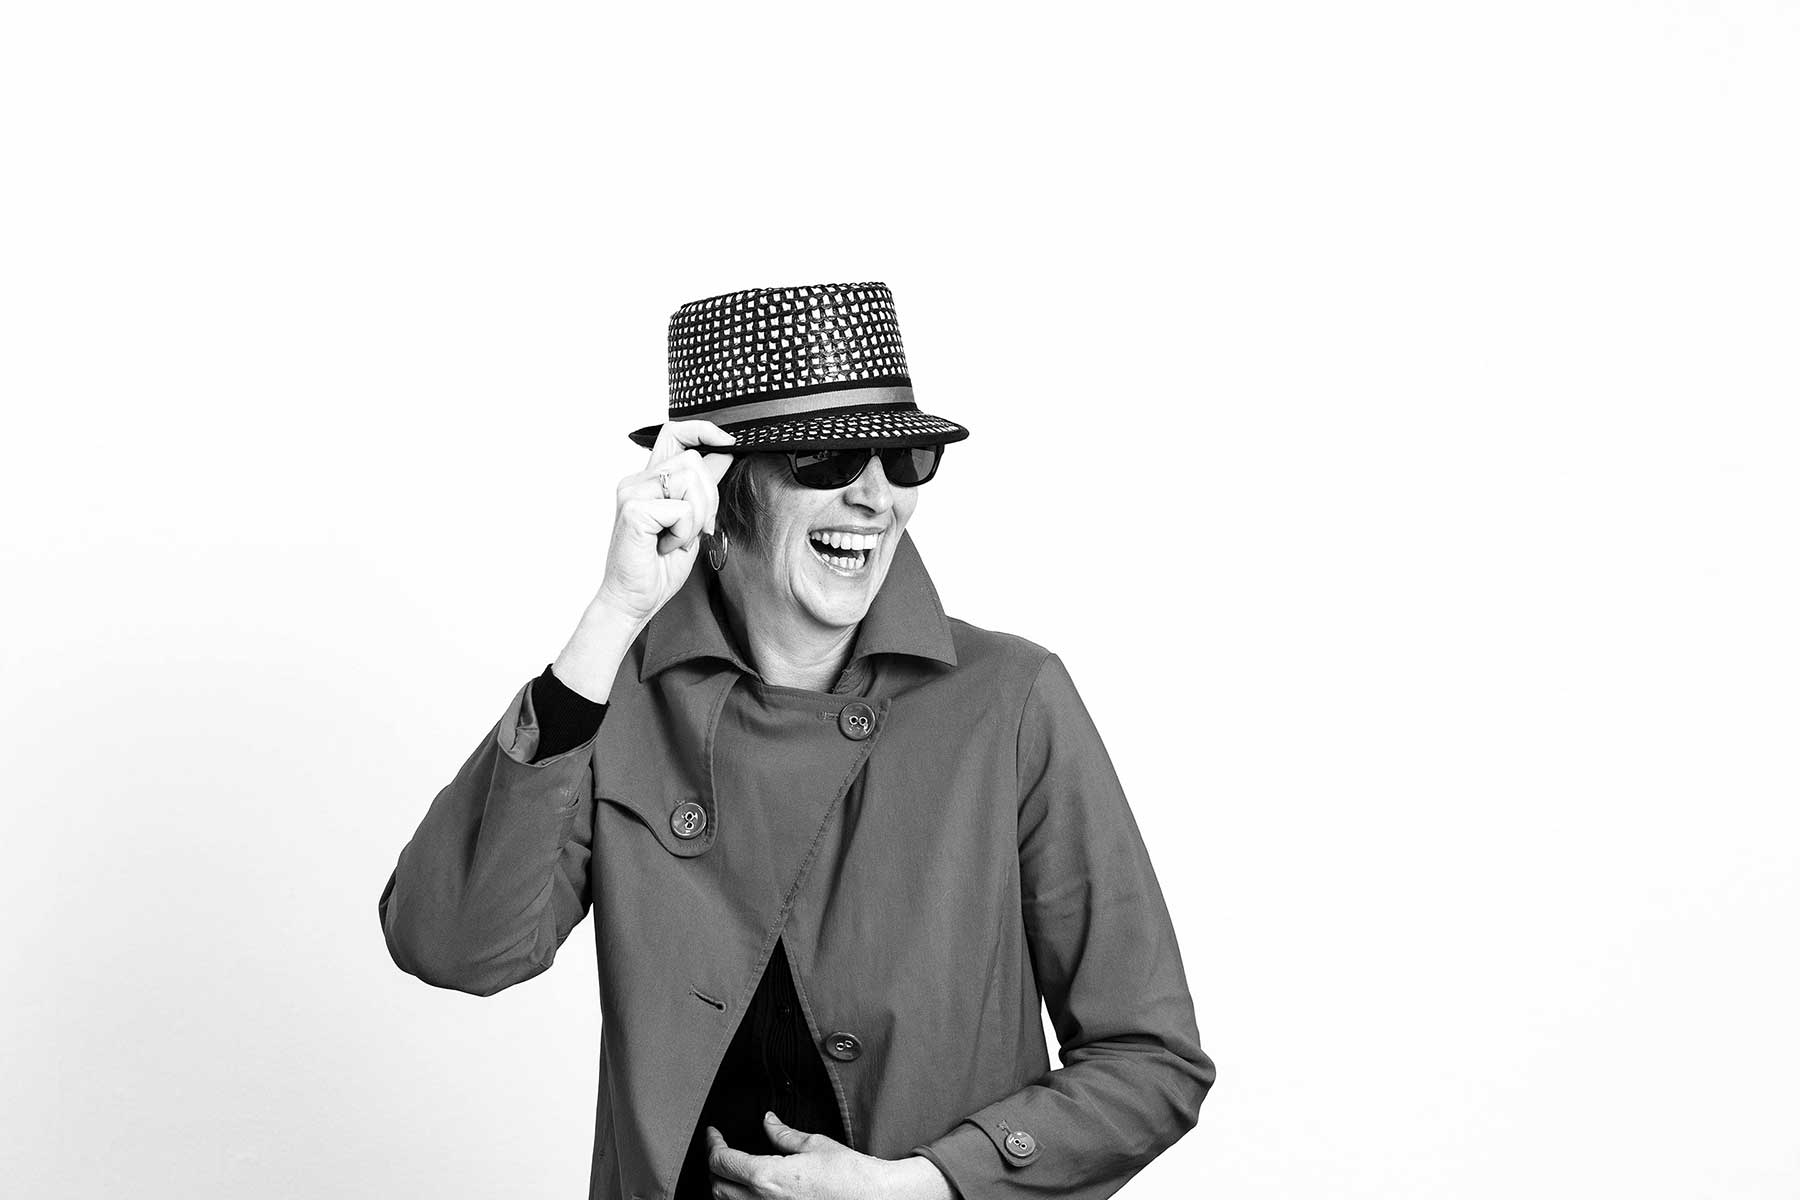 a laughing lady on white background in a trench coat with a hat and sunglasses on